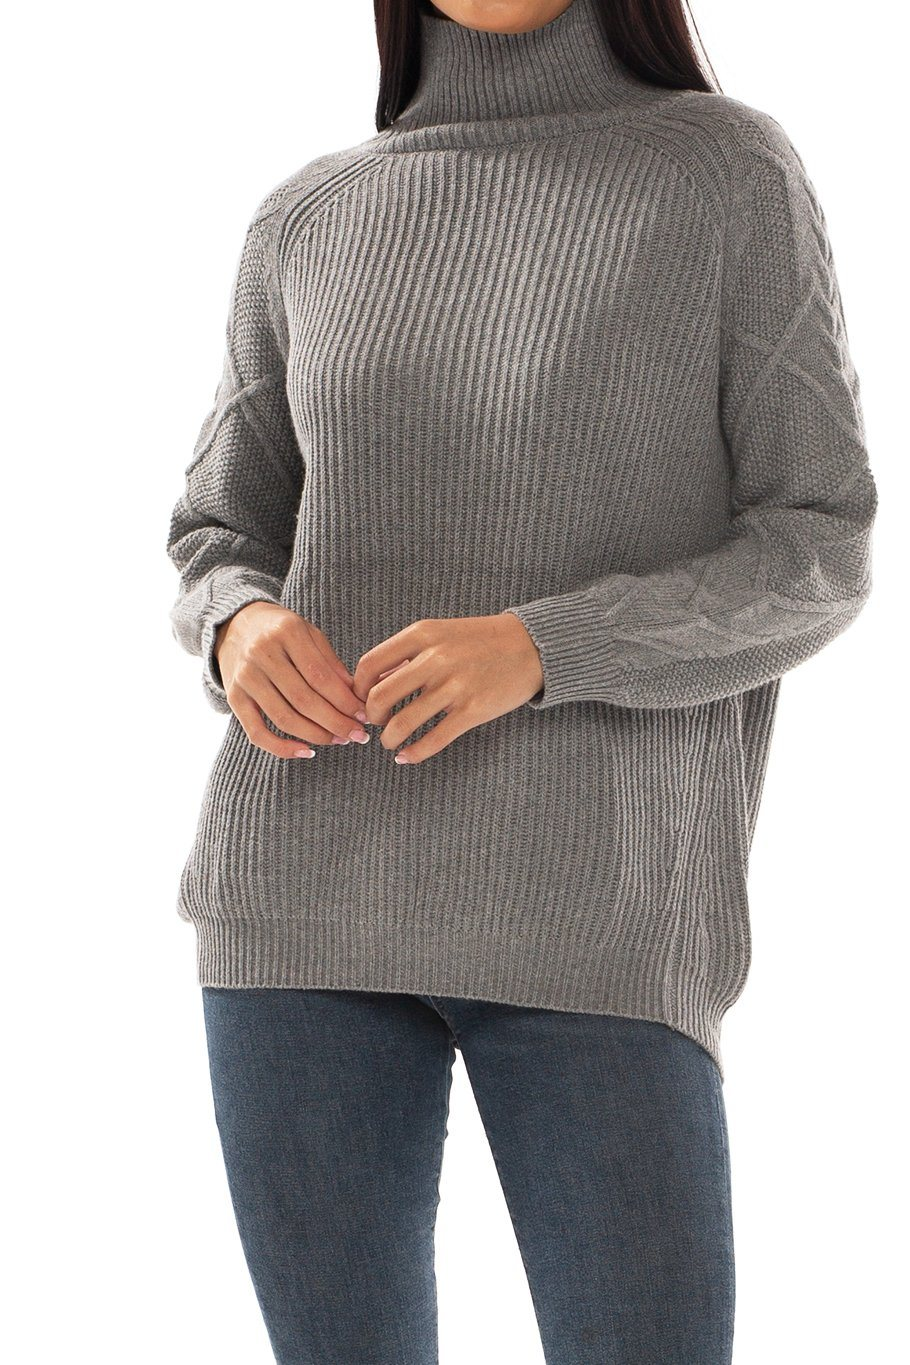 Banff Turtle Neck Sweater - Grey - Shore